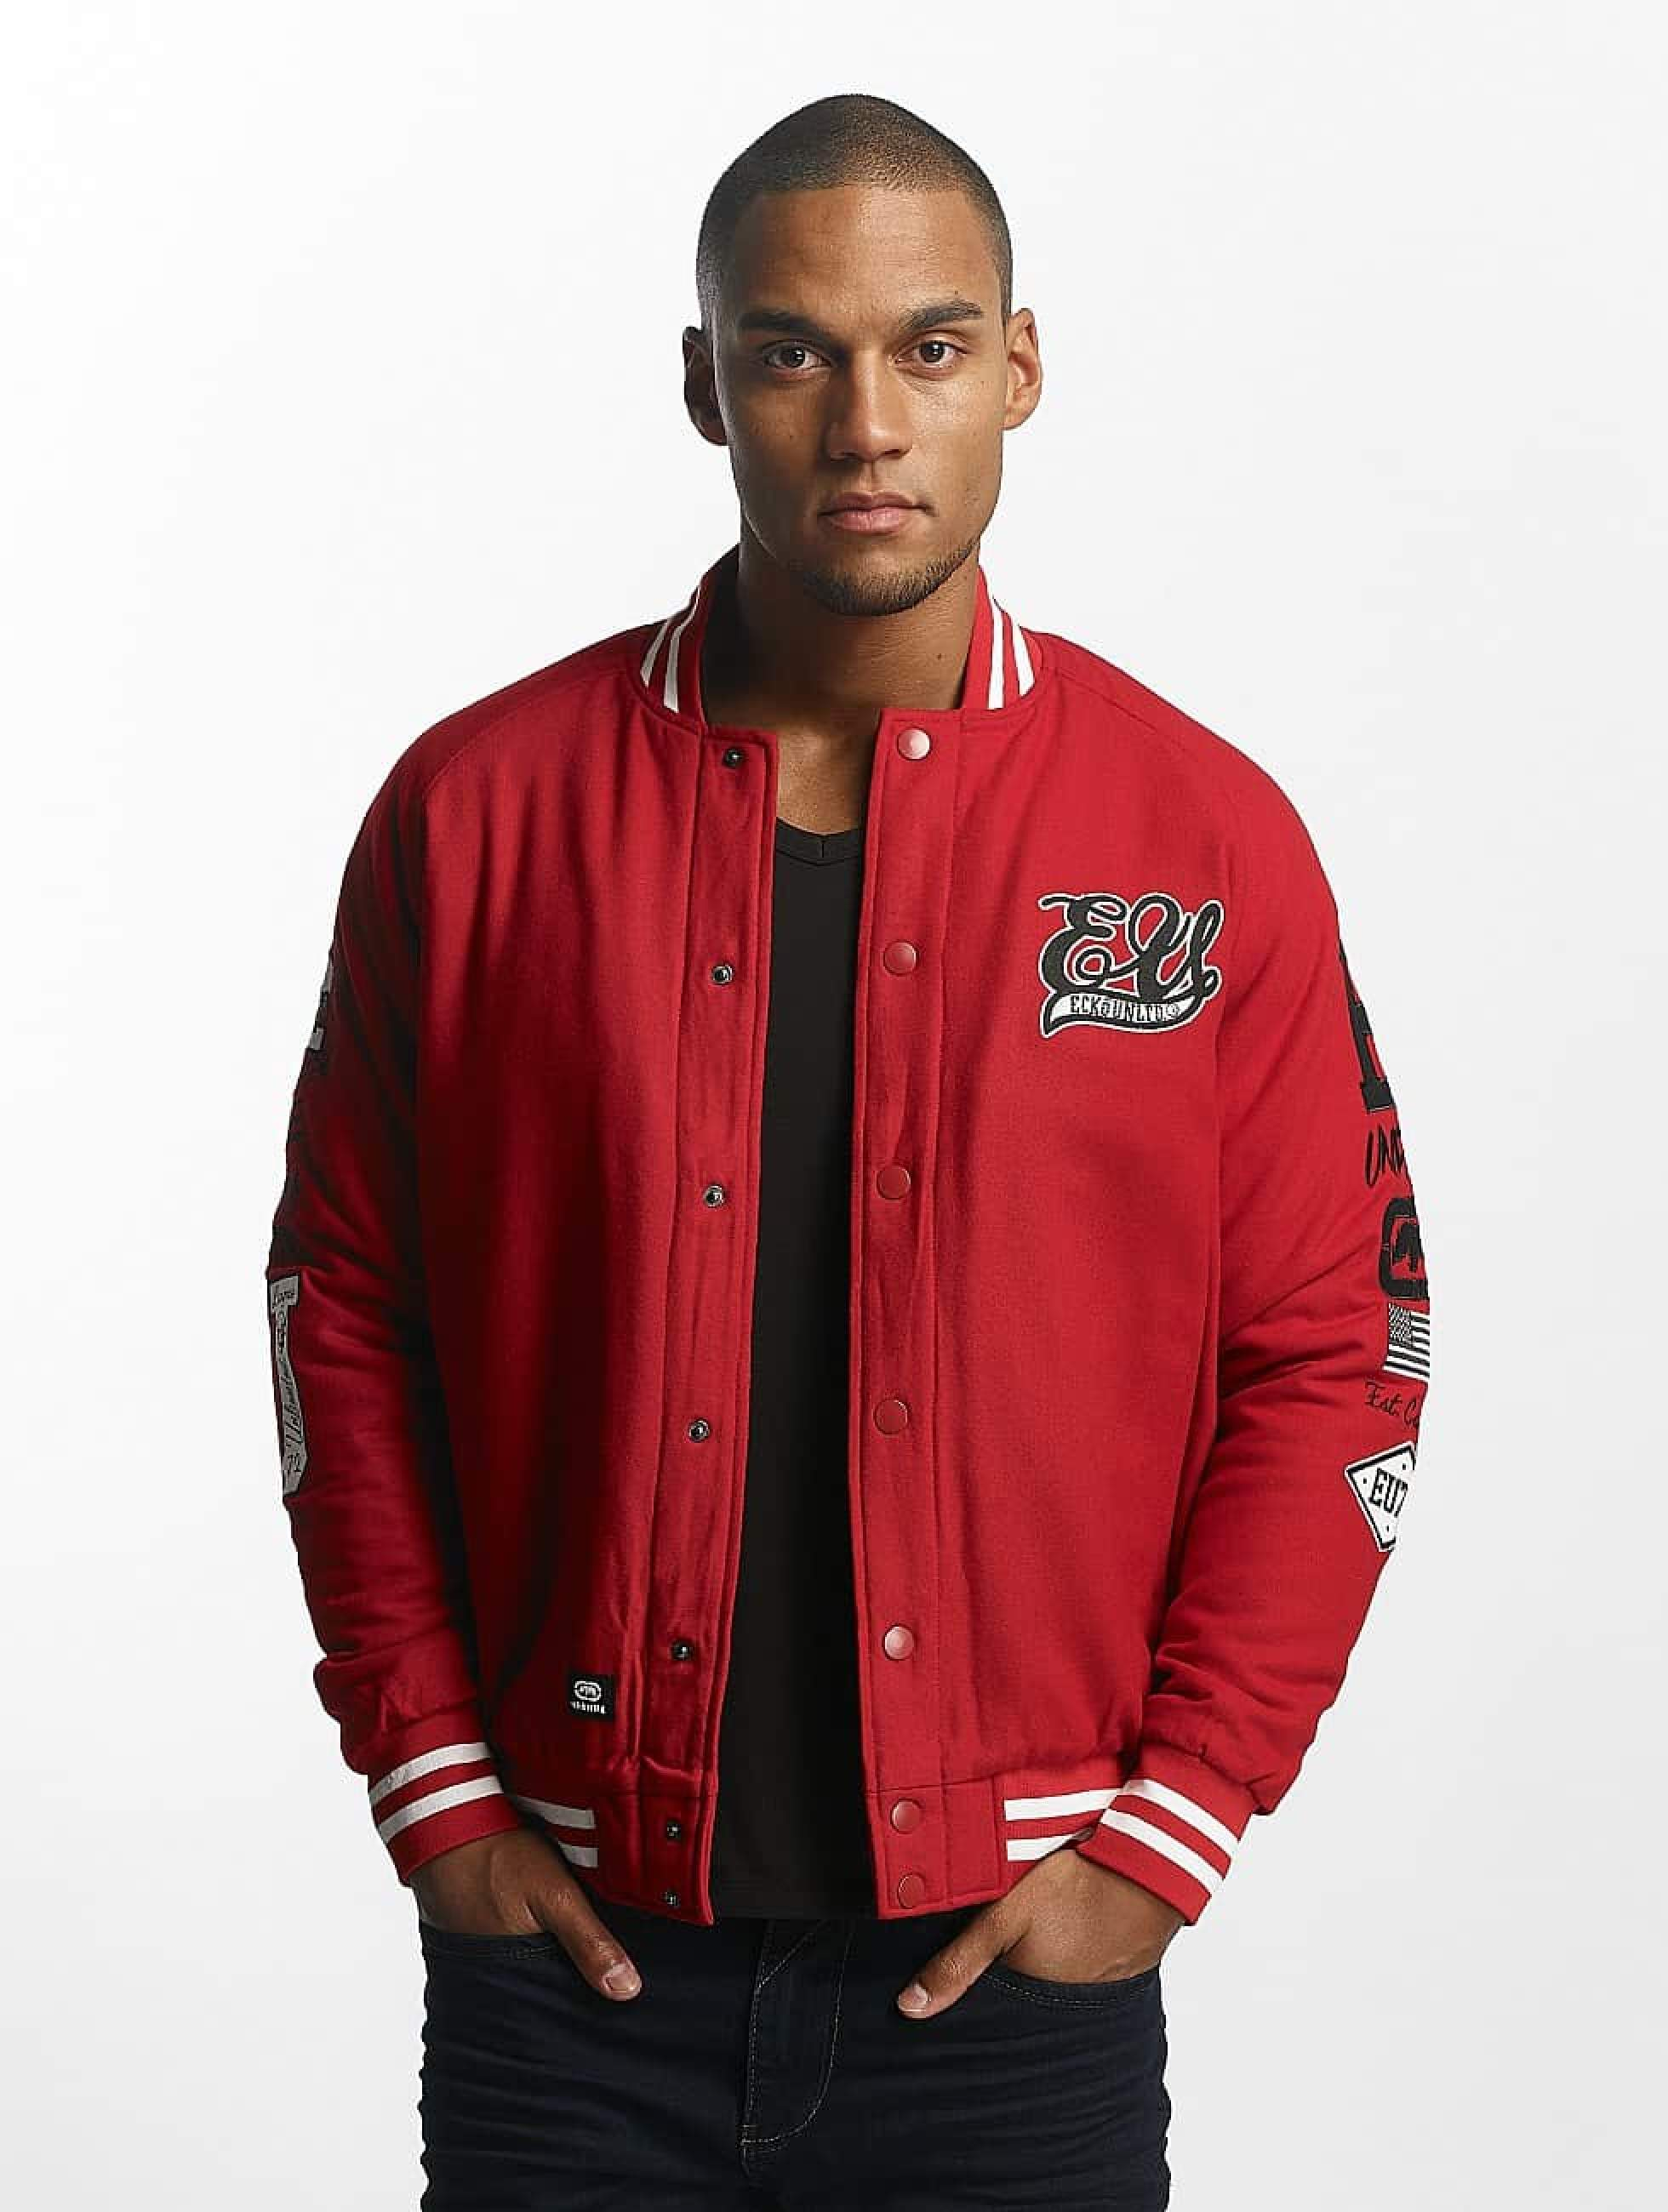 Ecko Unltd. / College Jacket Big Logo in red XL